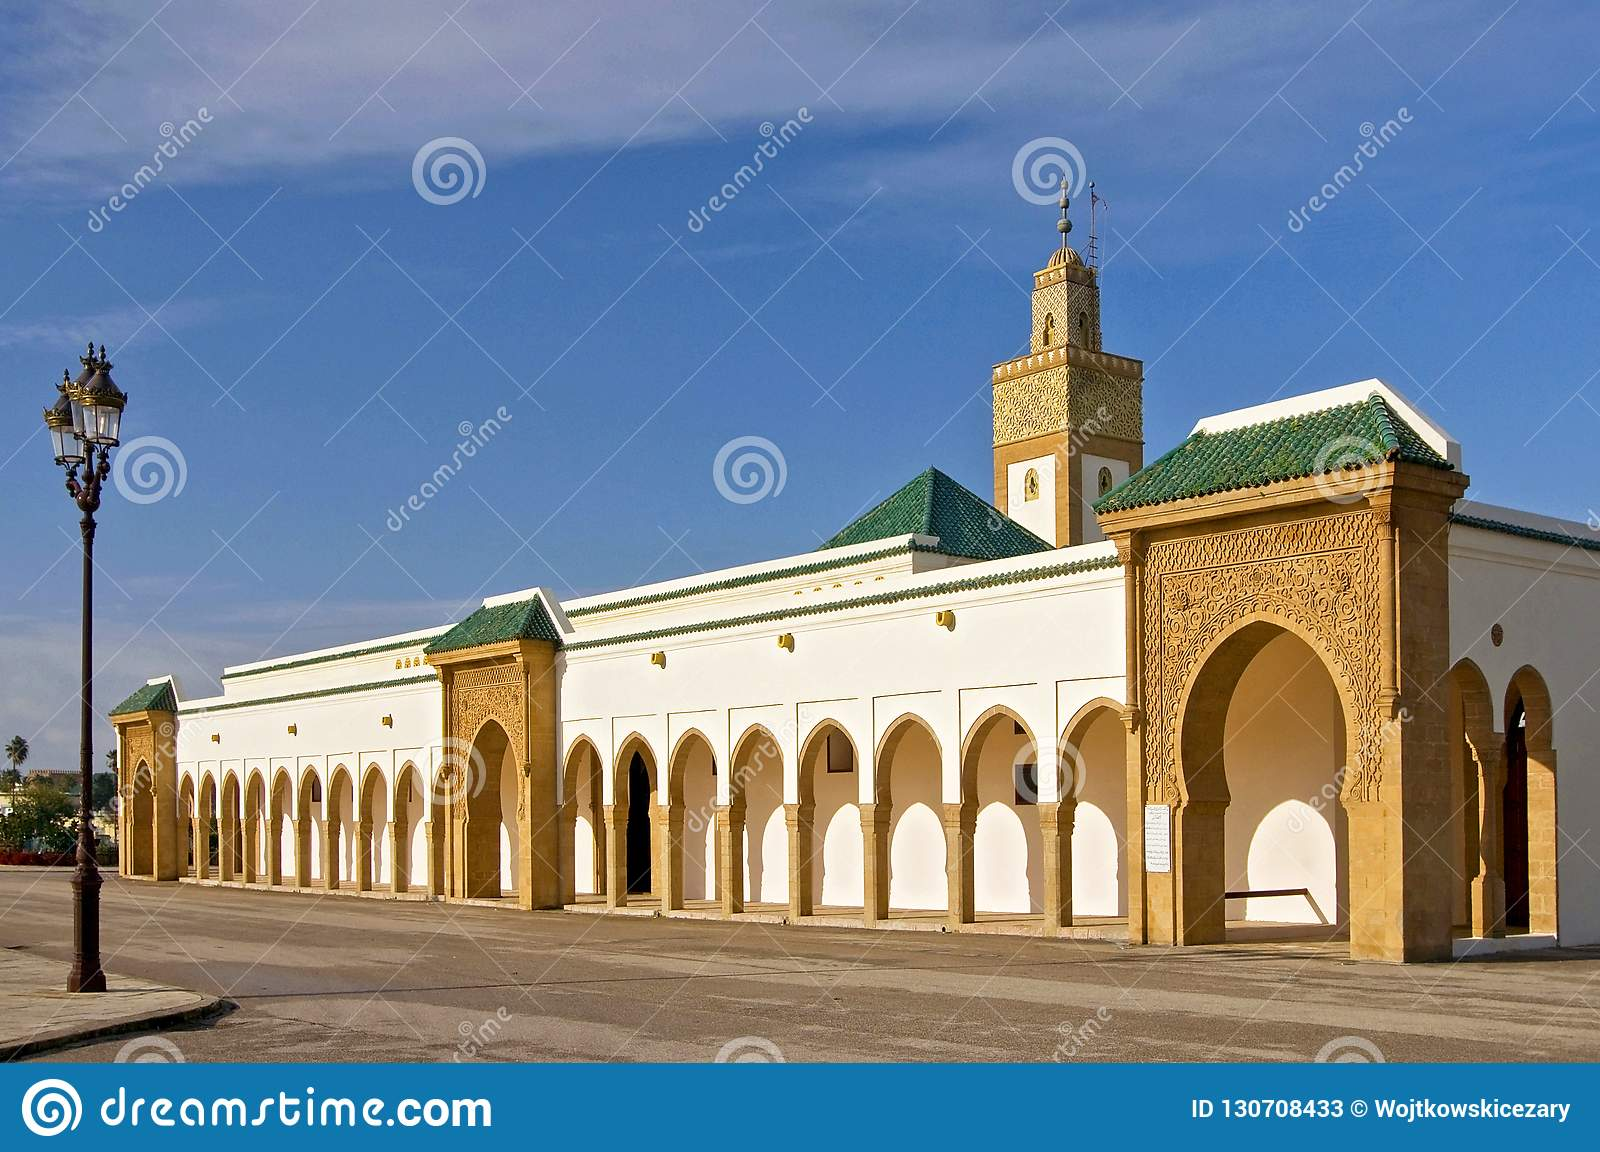 Dar al Makhzen is the primary and official residence of the king of Morocco.